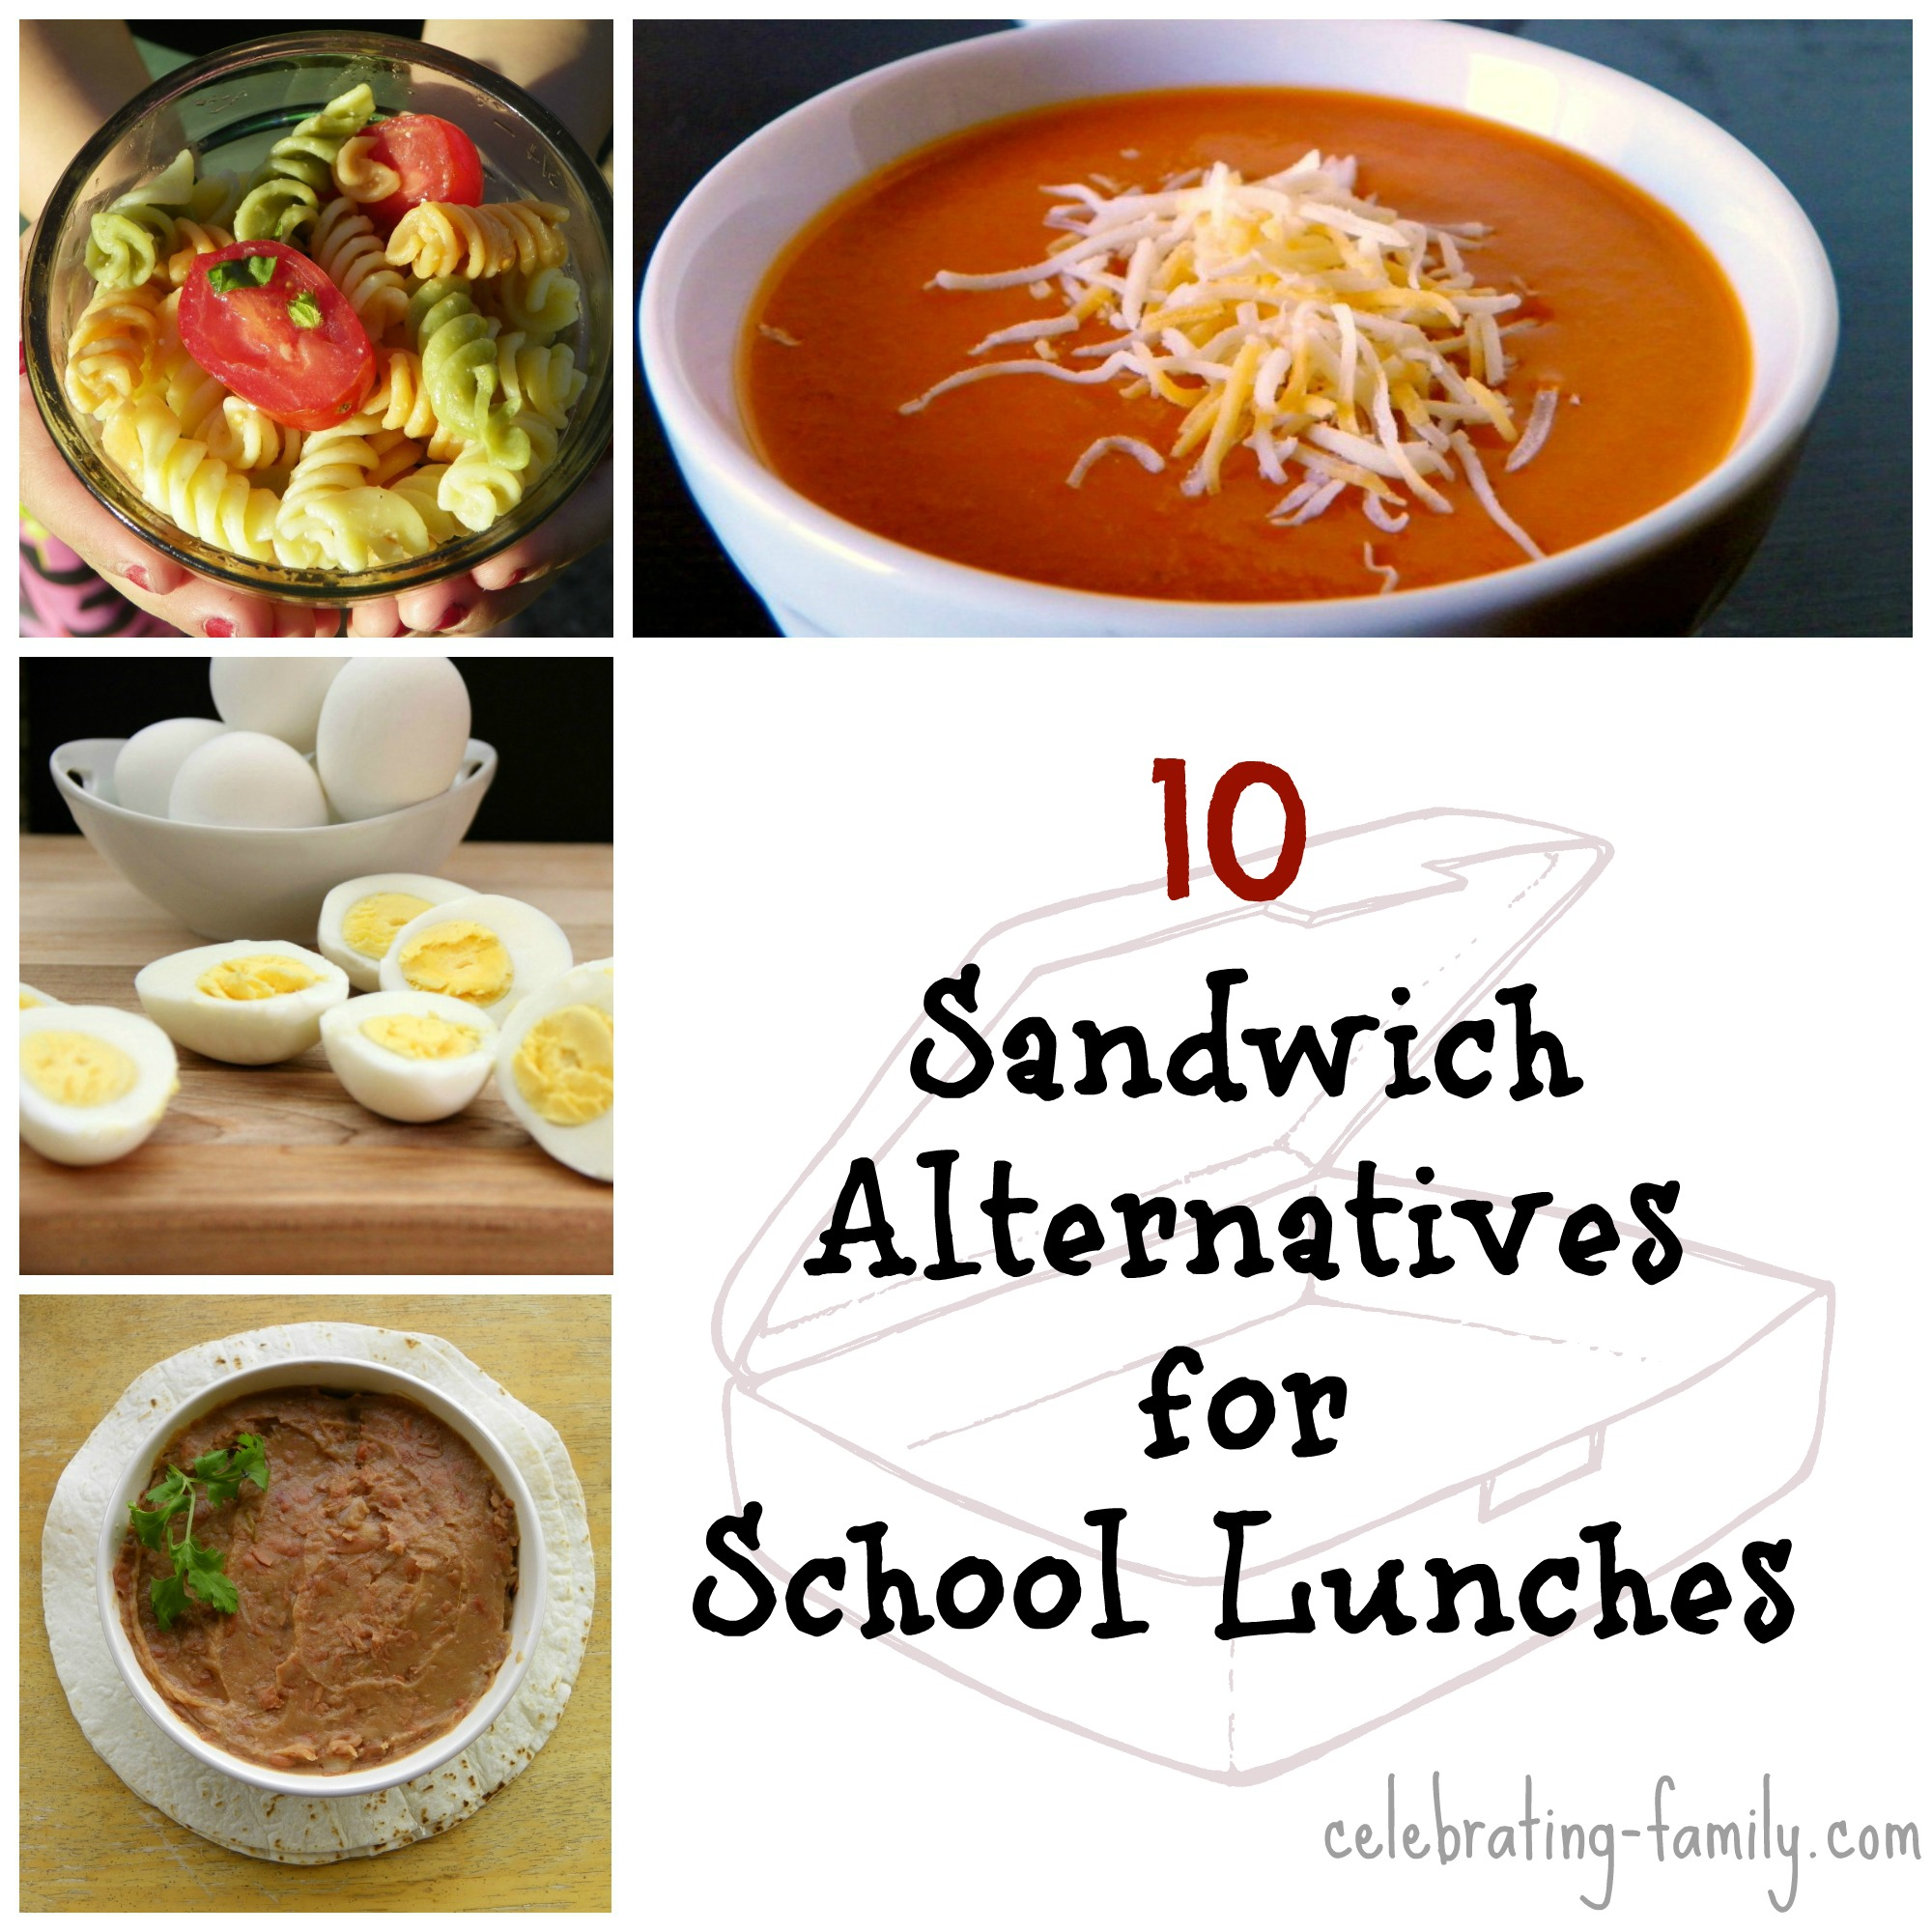 10 Sandwich Alternatives for School Lunches